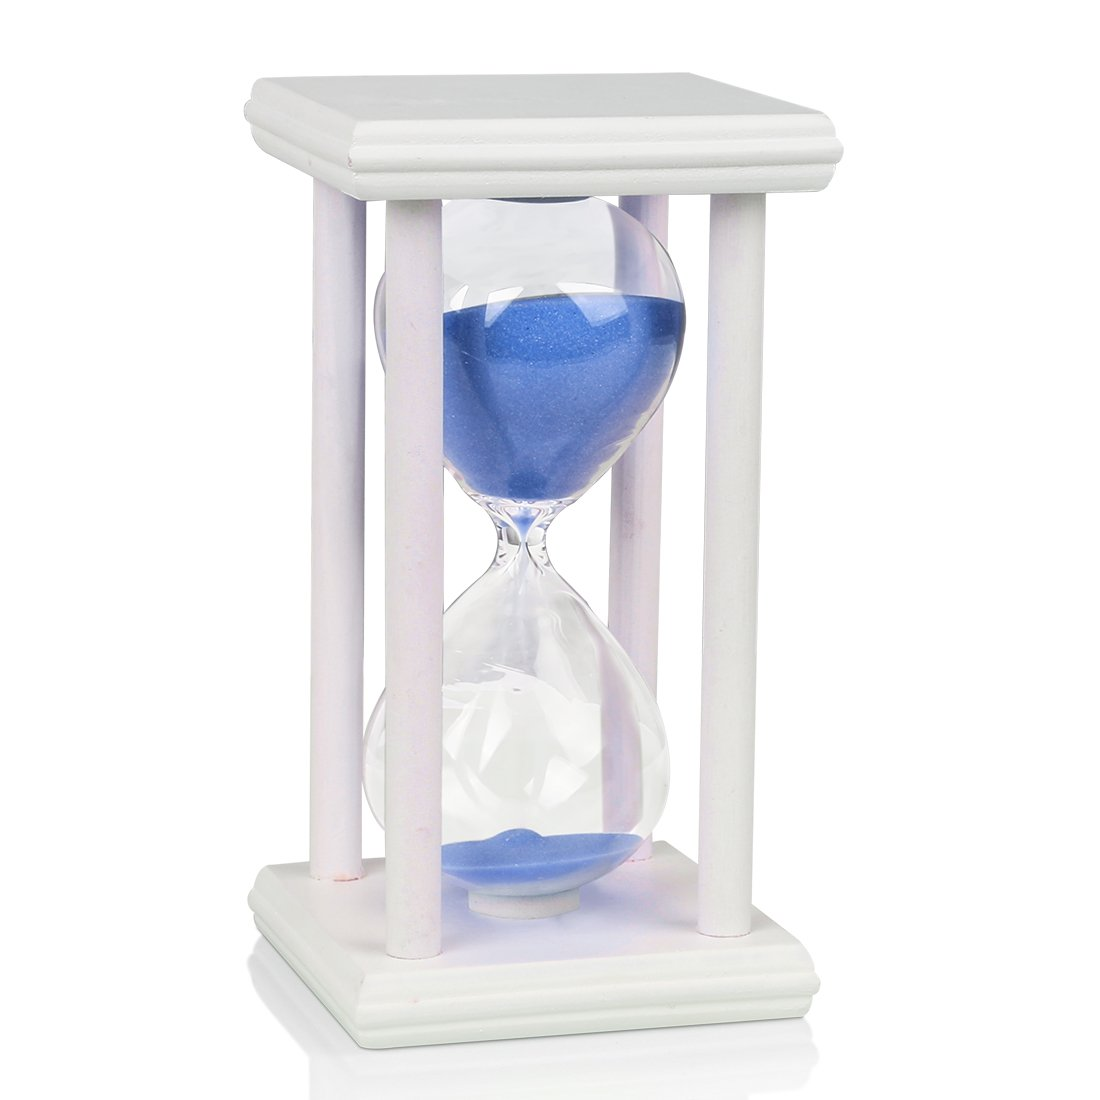 10 Minutes Wooden Frame Sand Timer with Red Sand Hourglass Home Decor